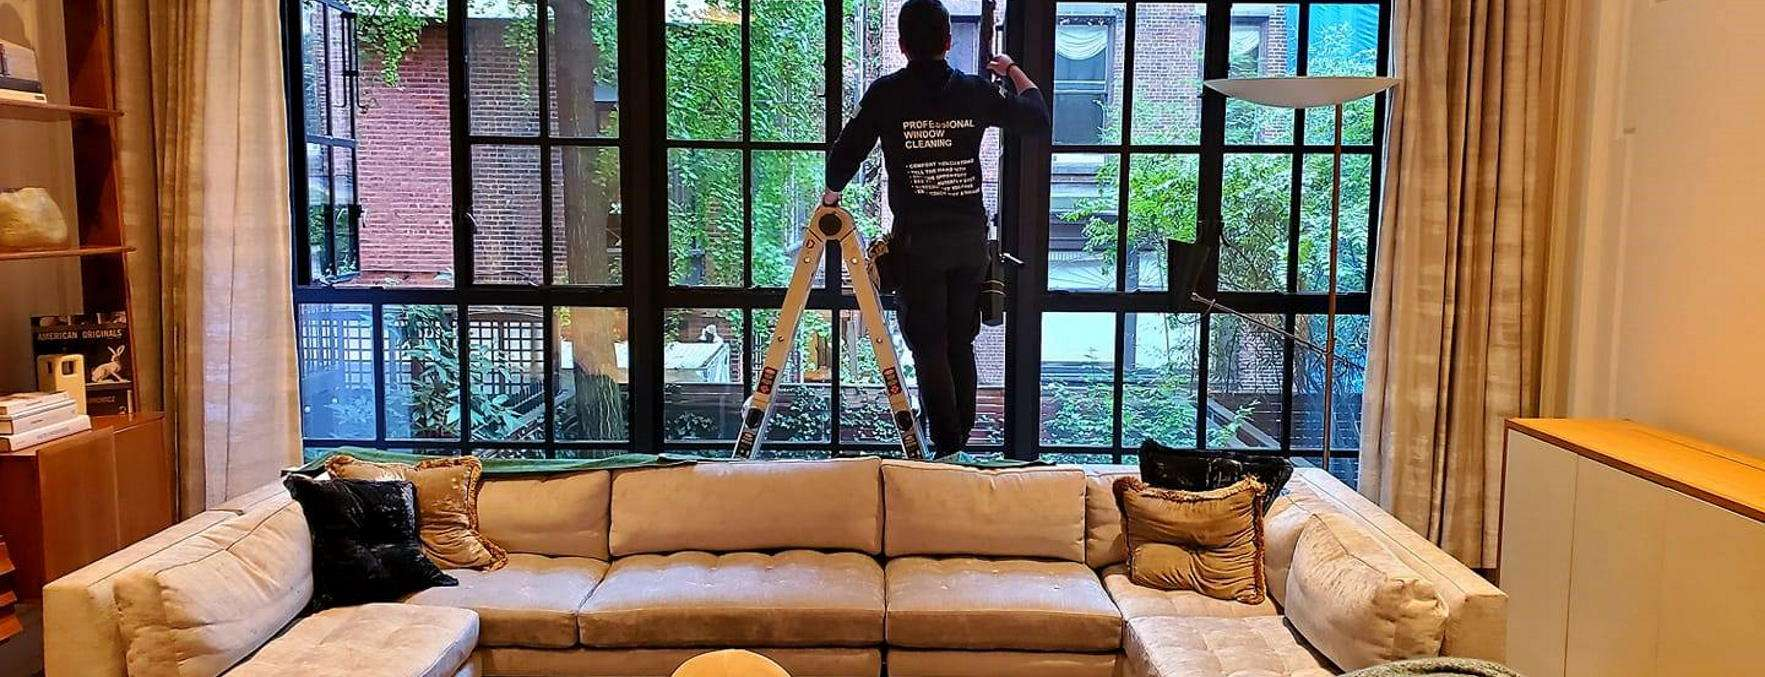 Residential window cleaning New York